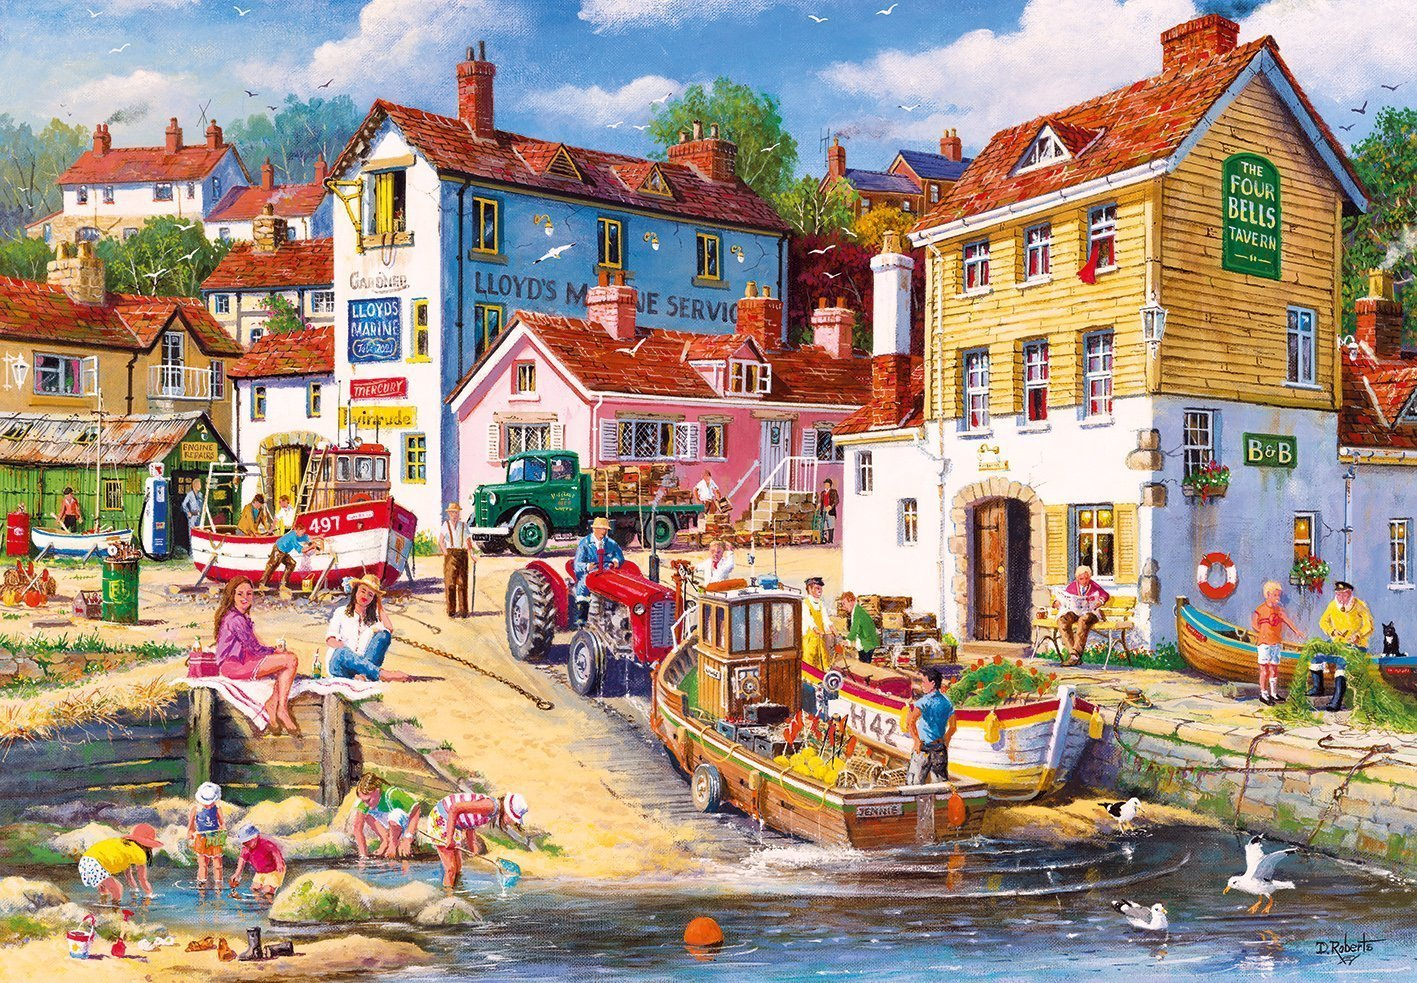 The Four Bells 2000 Piece Jigsaw Puzzle - All Jigsaw Puzzles